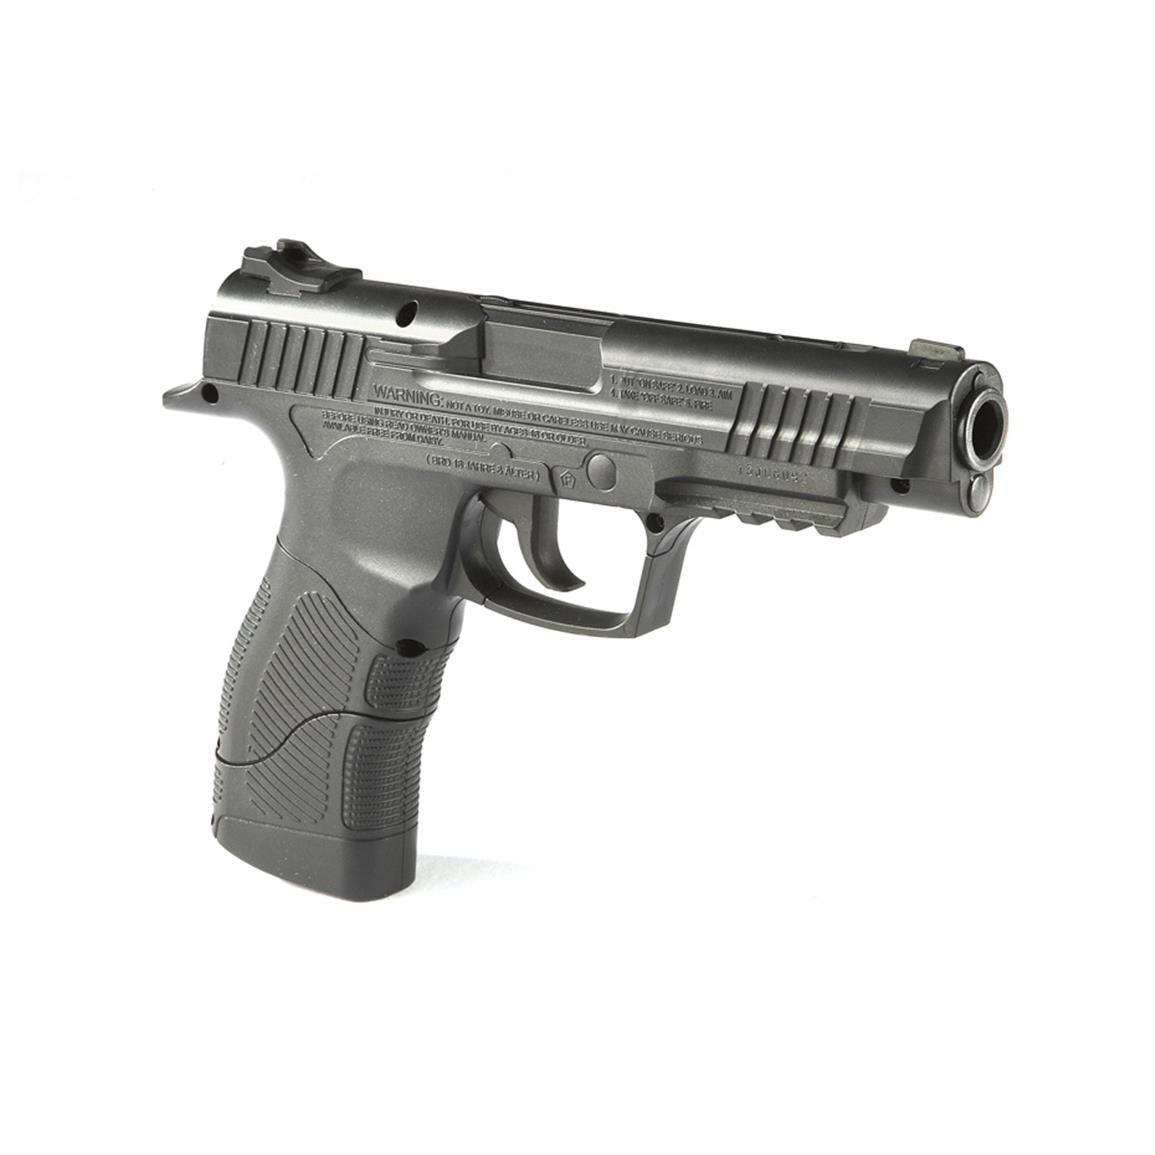 Daisy® PowerLine 15XT .177 BB Air Pistol (Remanufactured)